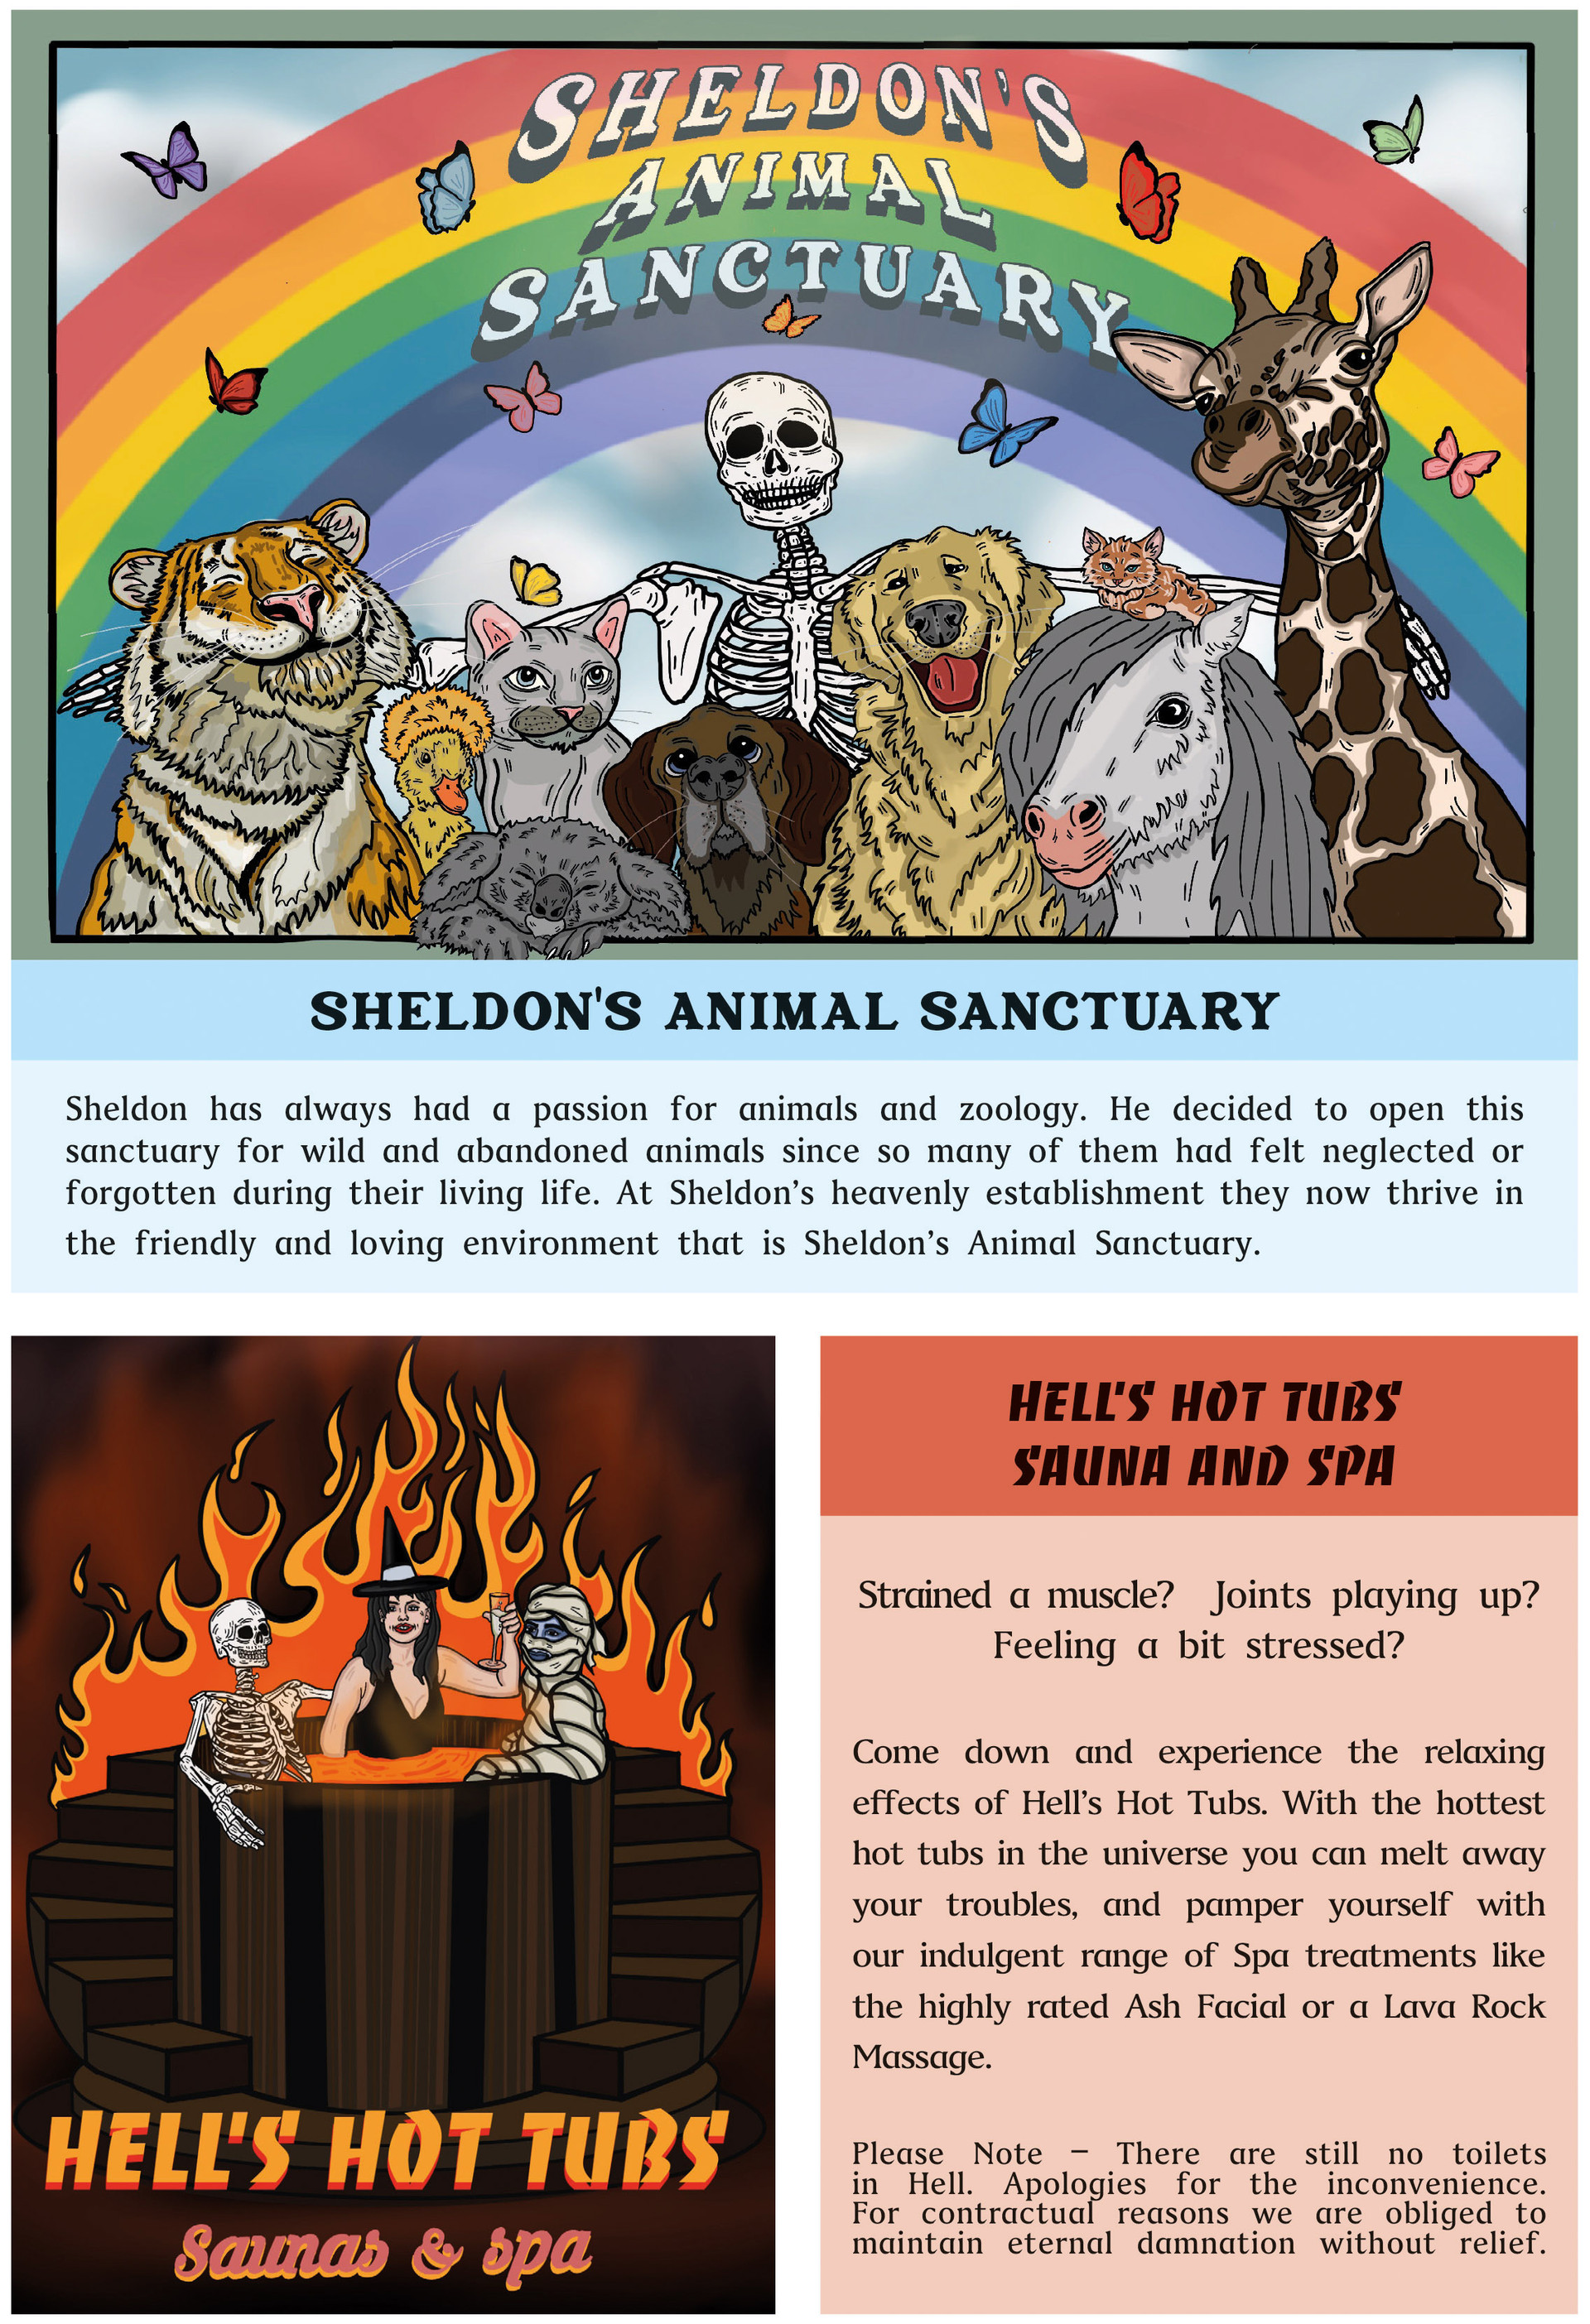 Sheldon's Animal Sanctuary, Hell's Hot Tub Sauna and Spa from Afterlife-A guide for the Recently Deceased.